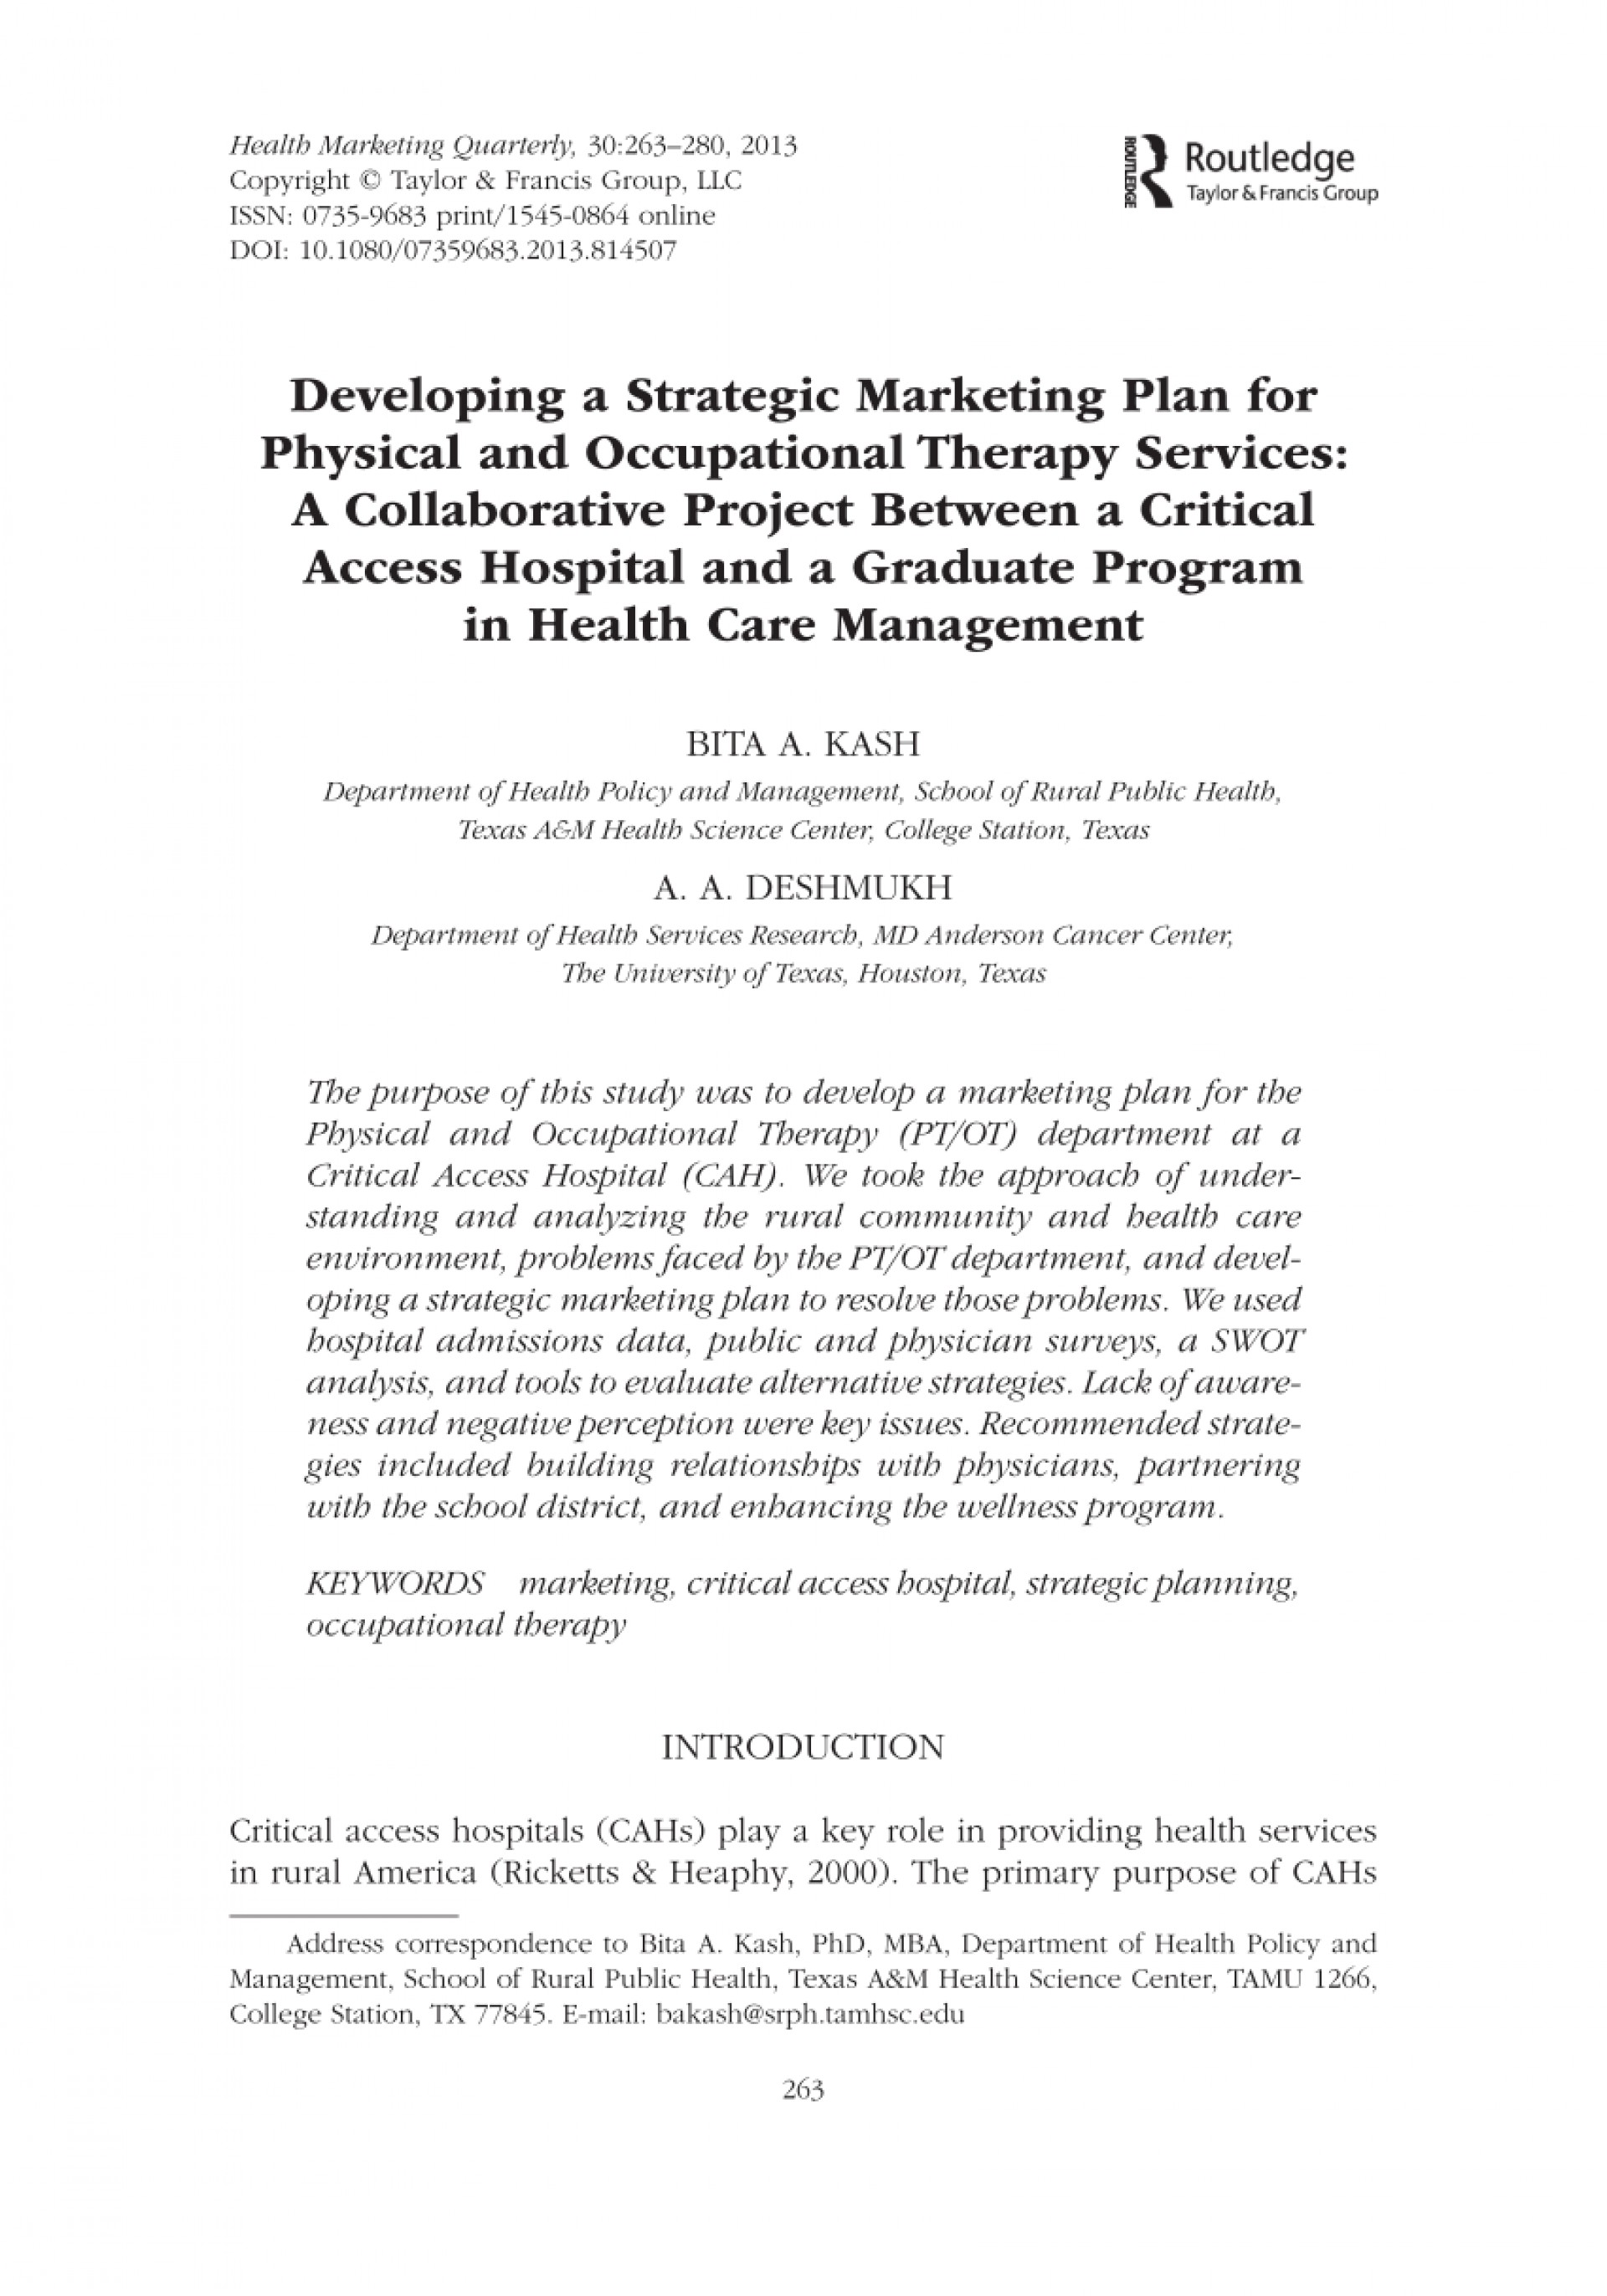 006 Research Paper On Cancer Marketing Plan Mba Image Hd Largepreview For Admission Singular Treatment Pdf 1920